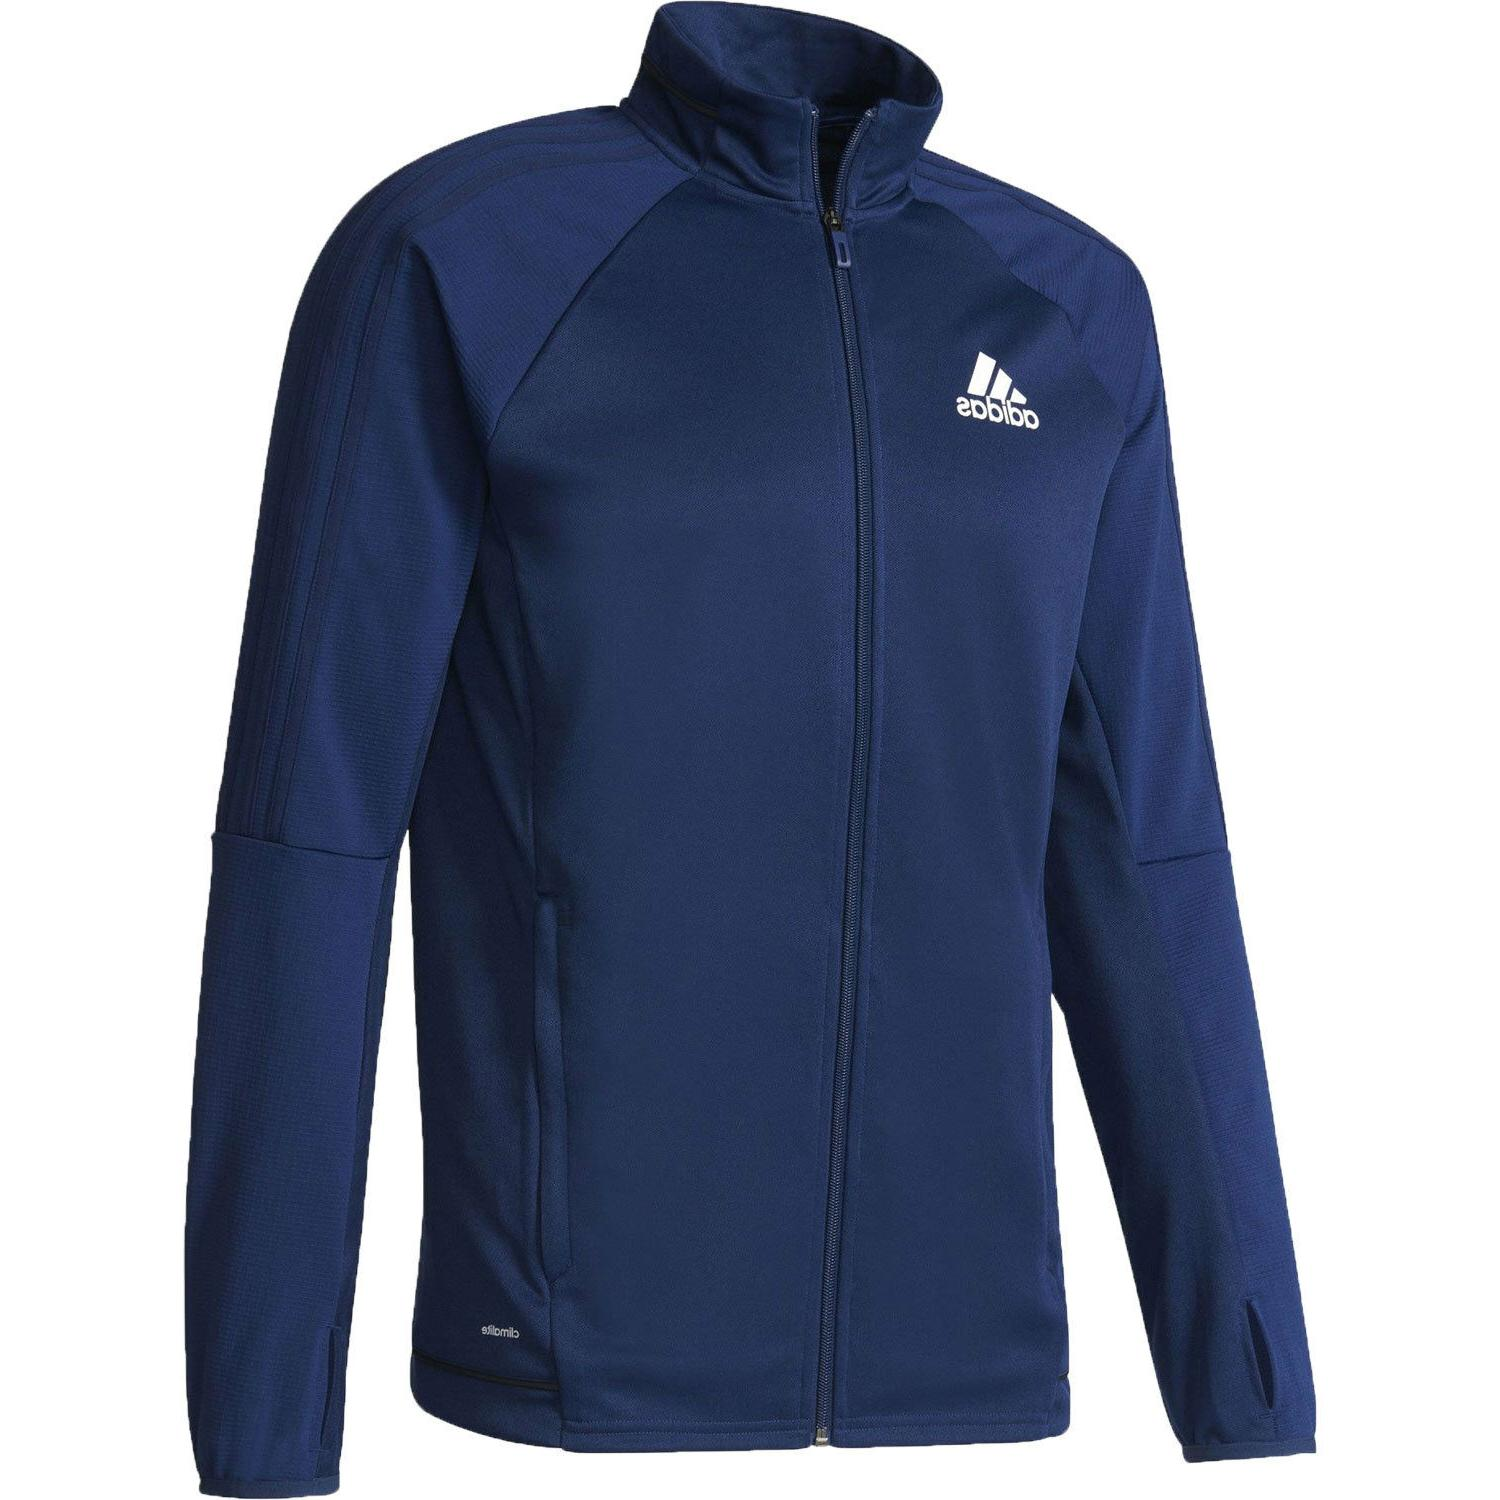 Adidas Mens Tiro 17 Athletic Training Jacket